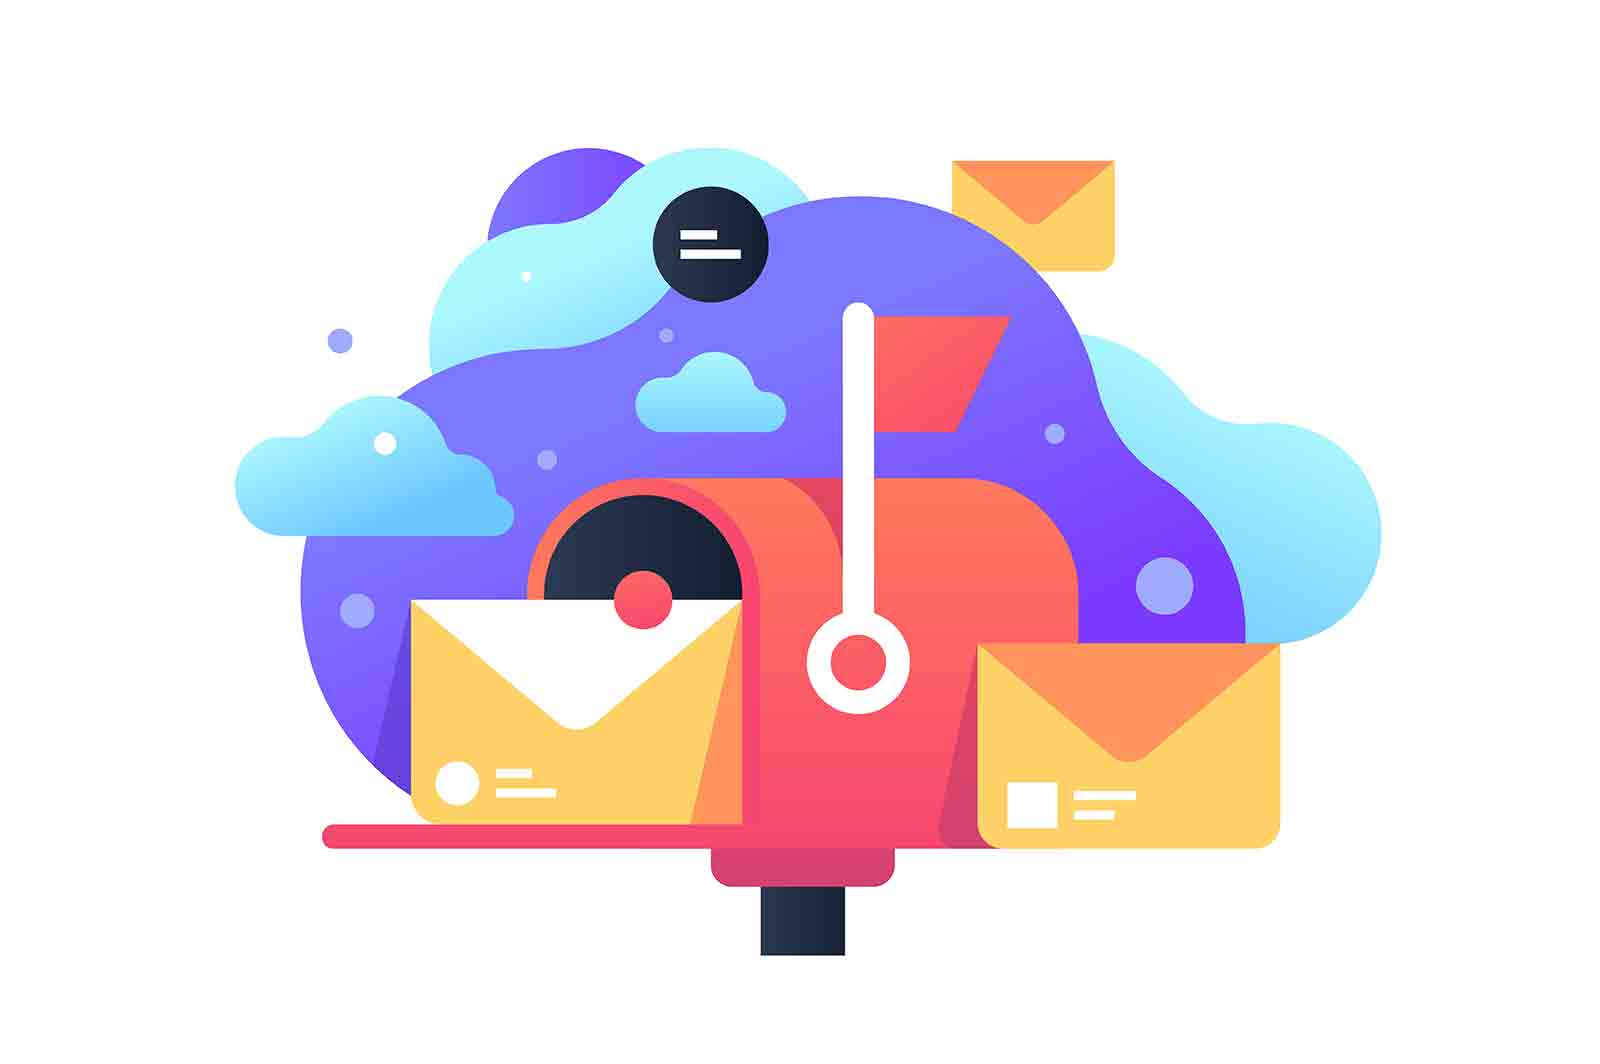 Classic mailbox with letter icon for post. Concept symbol personal delivery service for communication. Vector illustration.